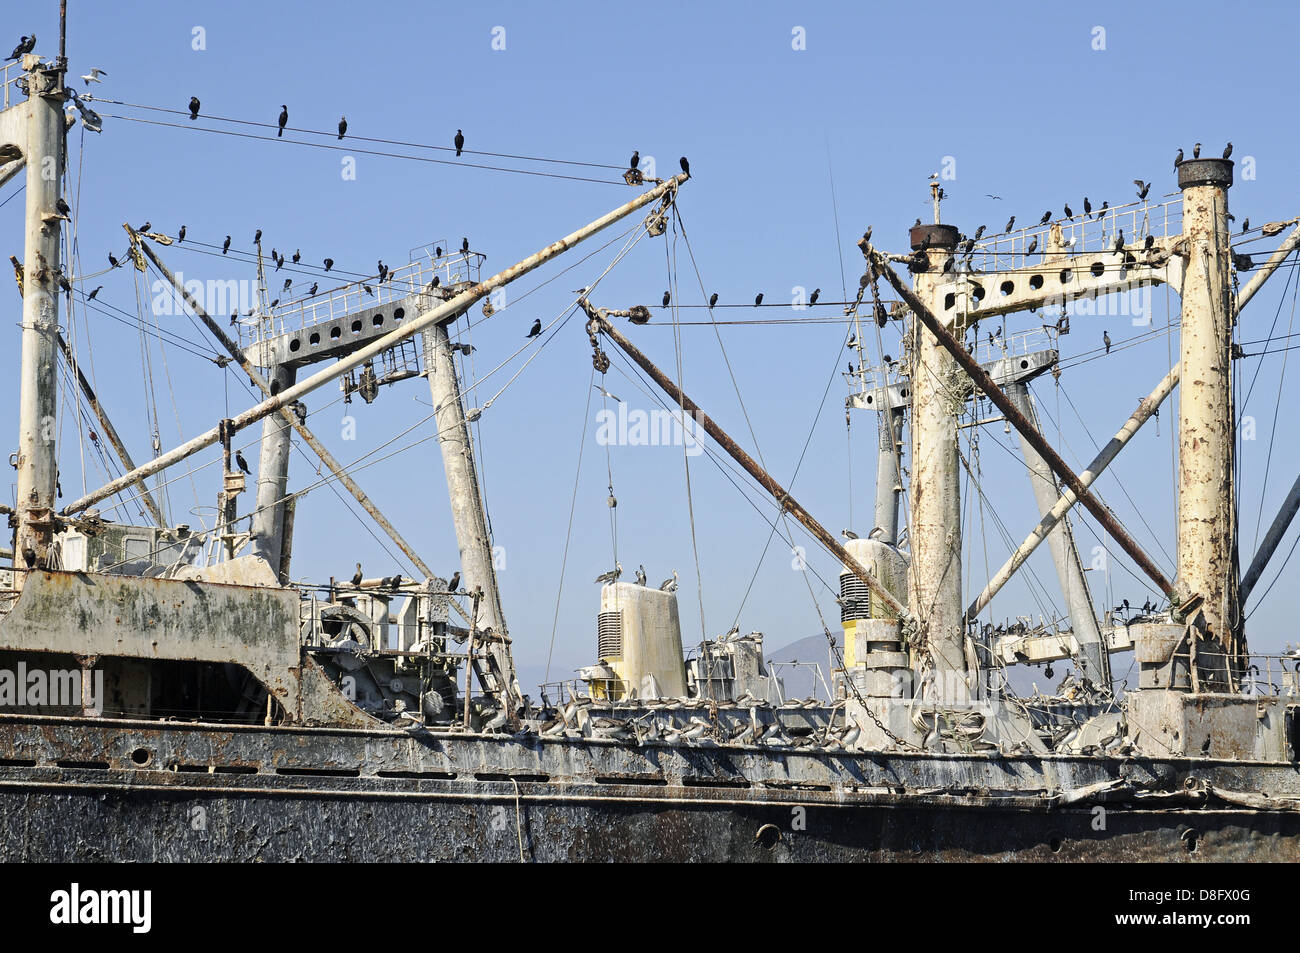 old ship - Stock Image